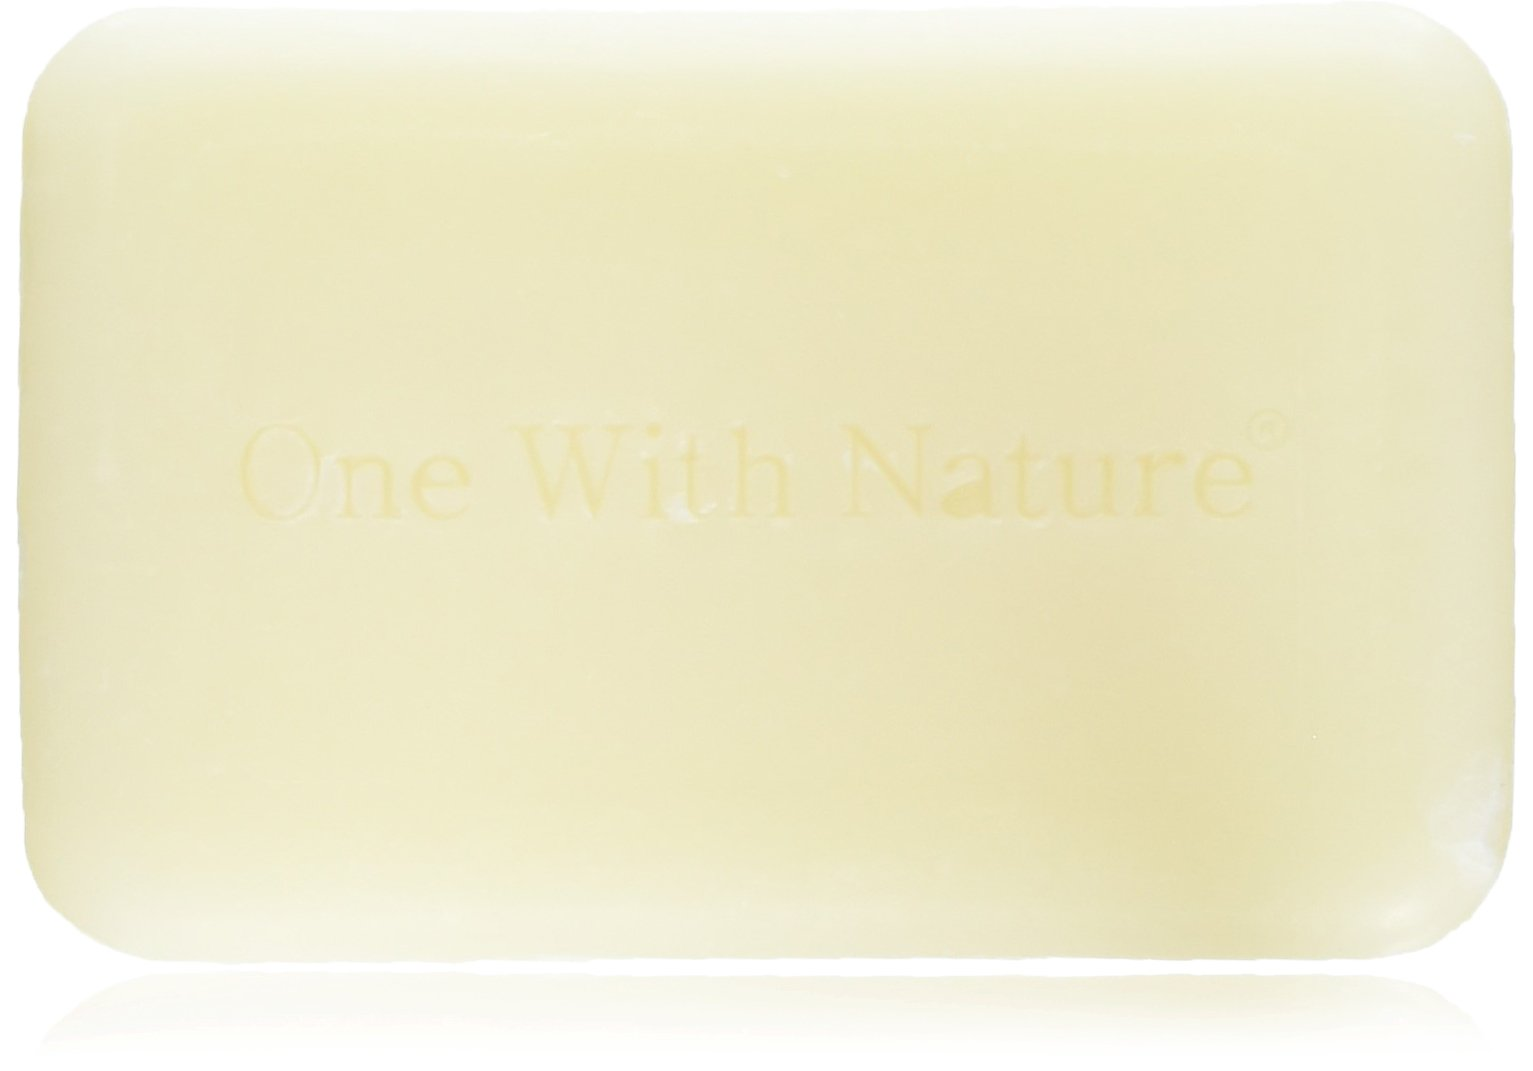 Bar Soap,Goat's MLK&lvndr, 2.5 Pound by One With Nature (Image #1)